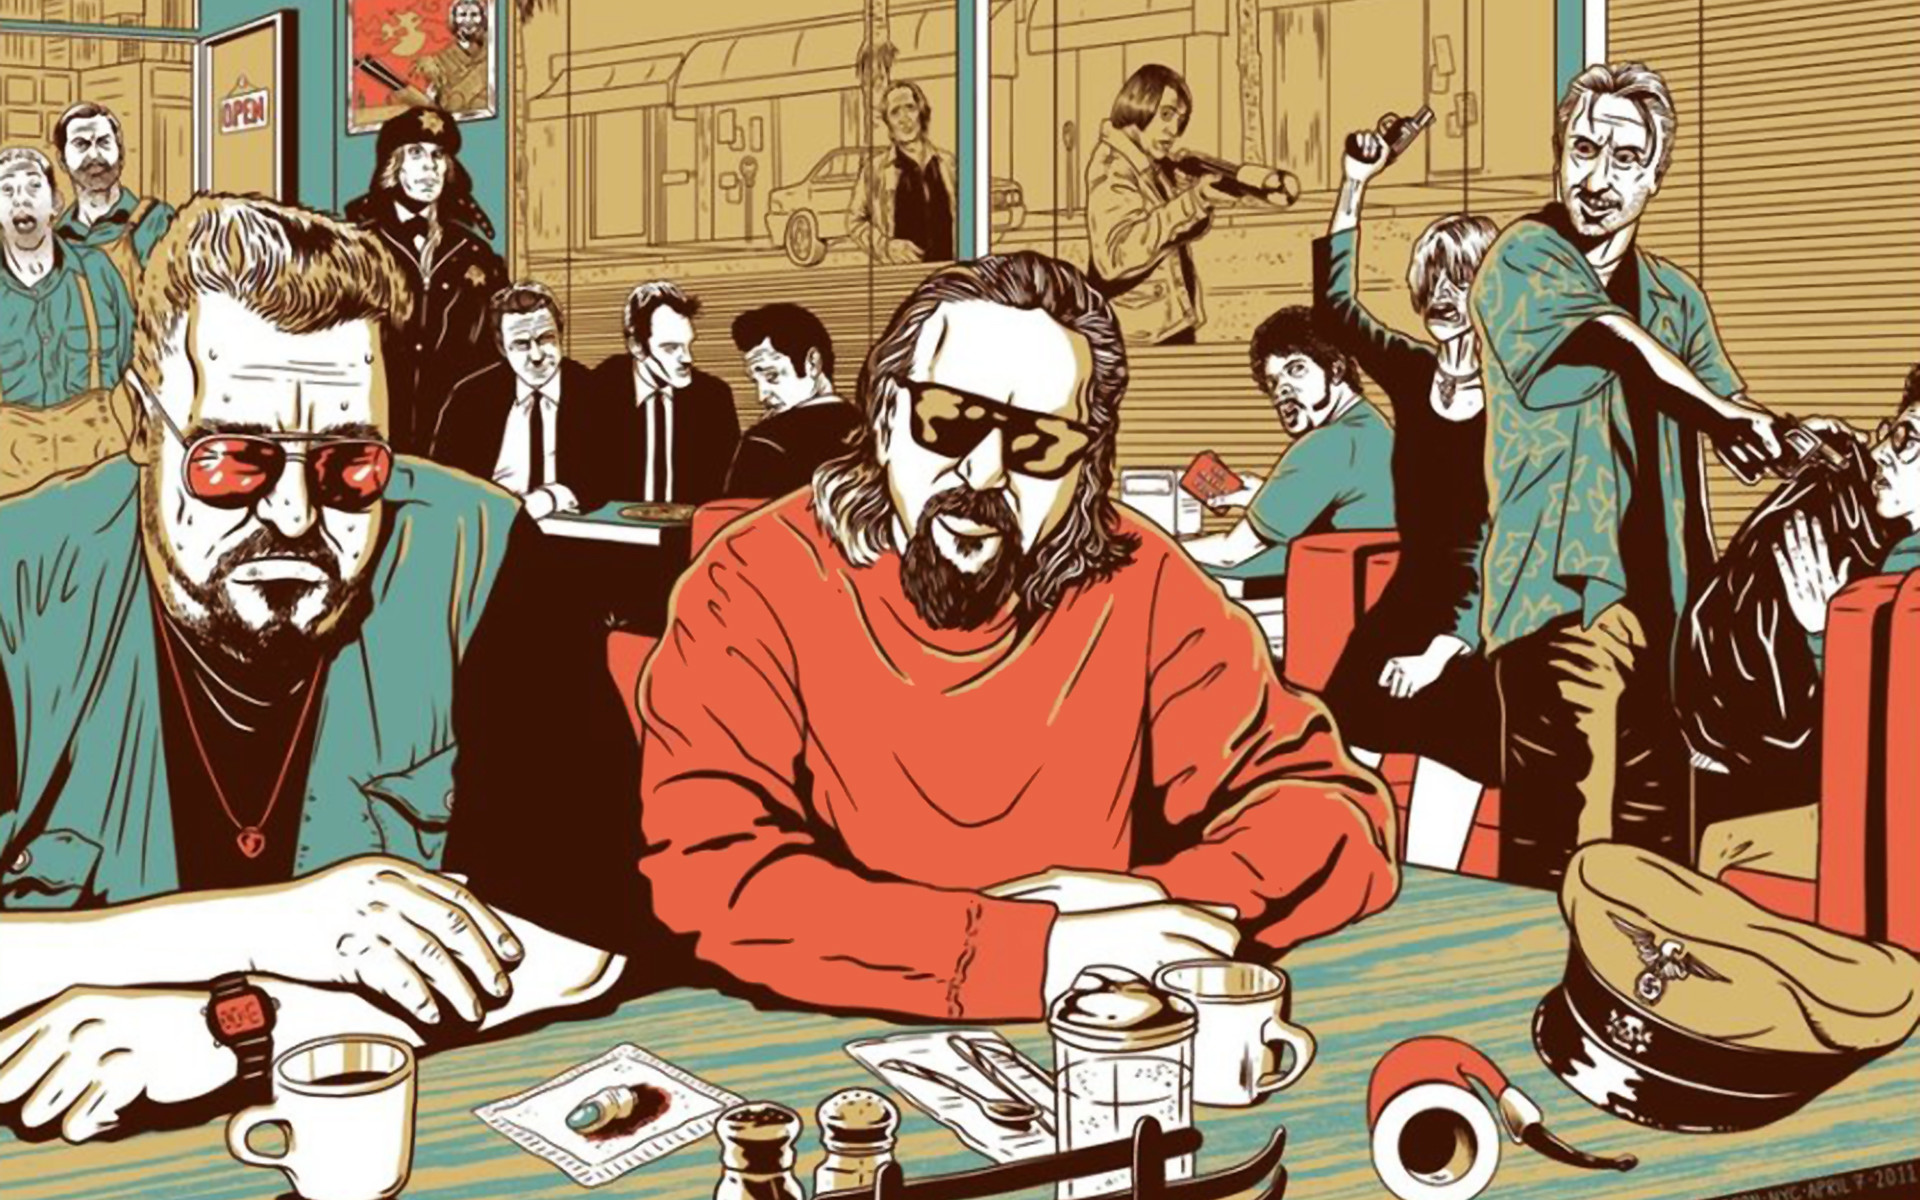 Reservoir dogs the big lebowski no country for old men fargo inglorious  basterds wallpaper     9200   WallpaperUP